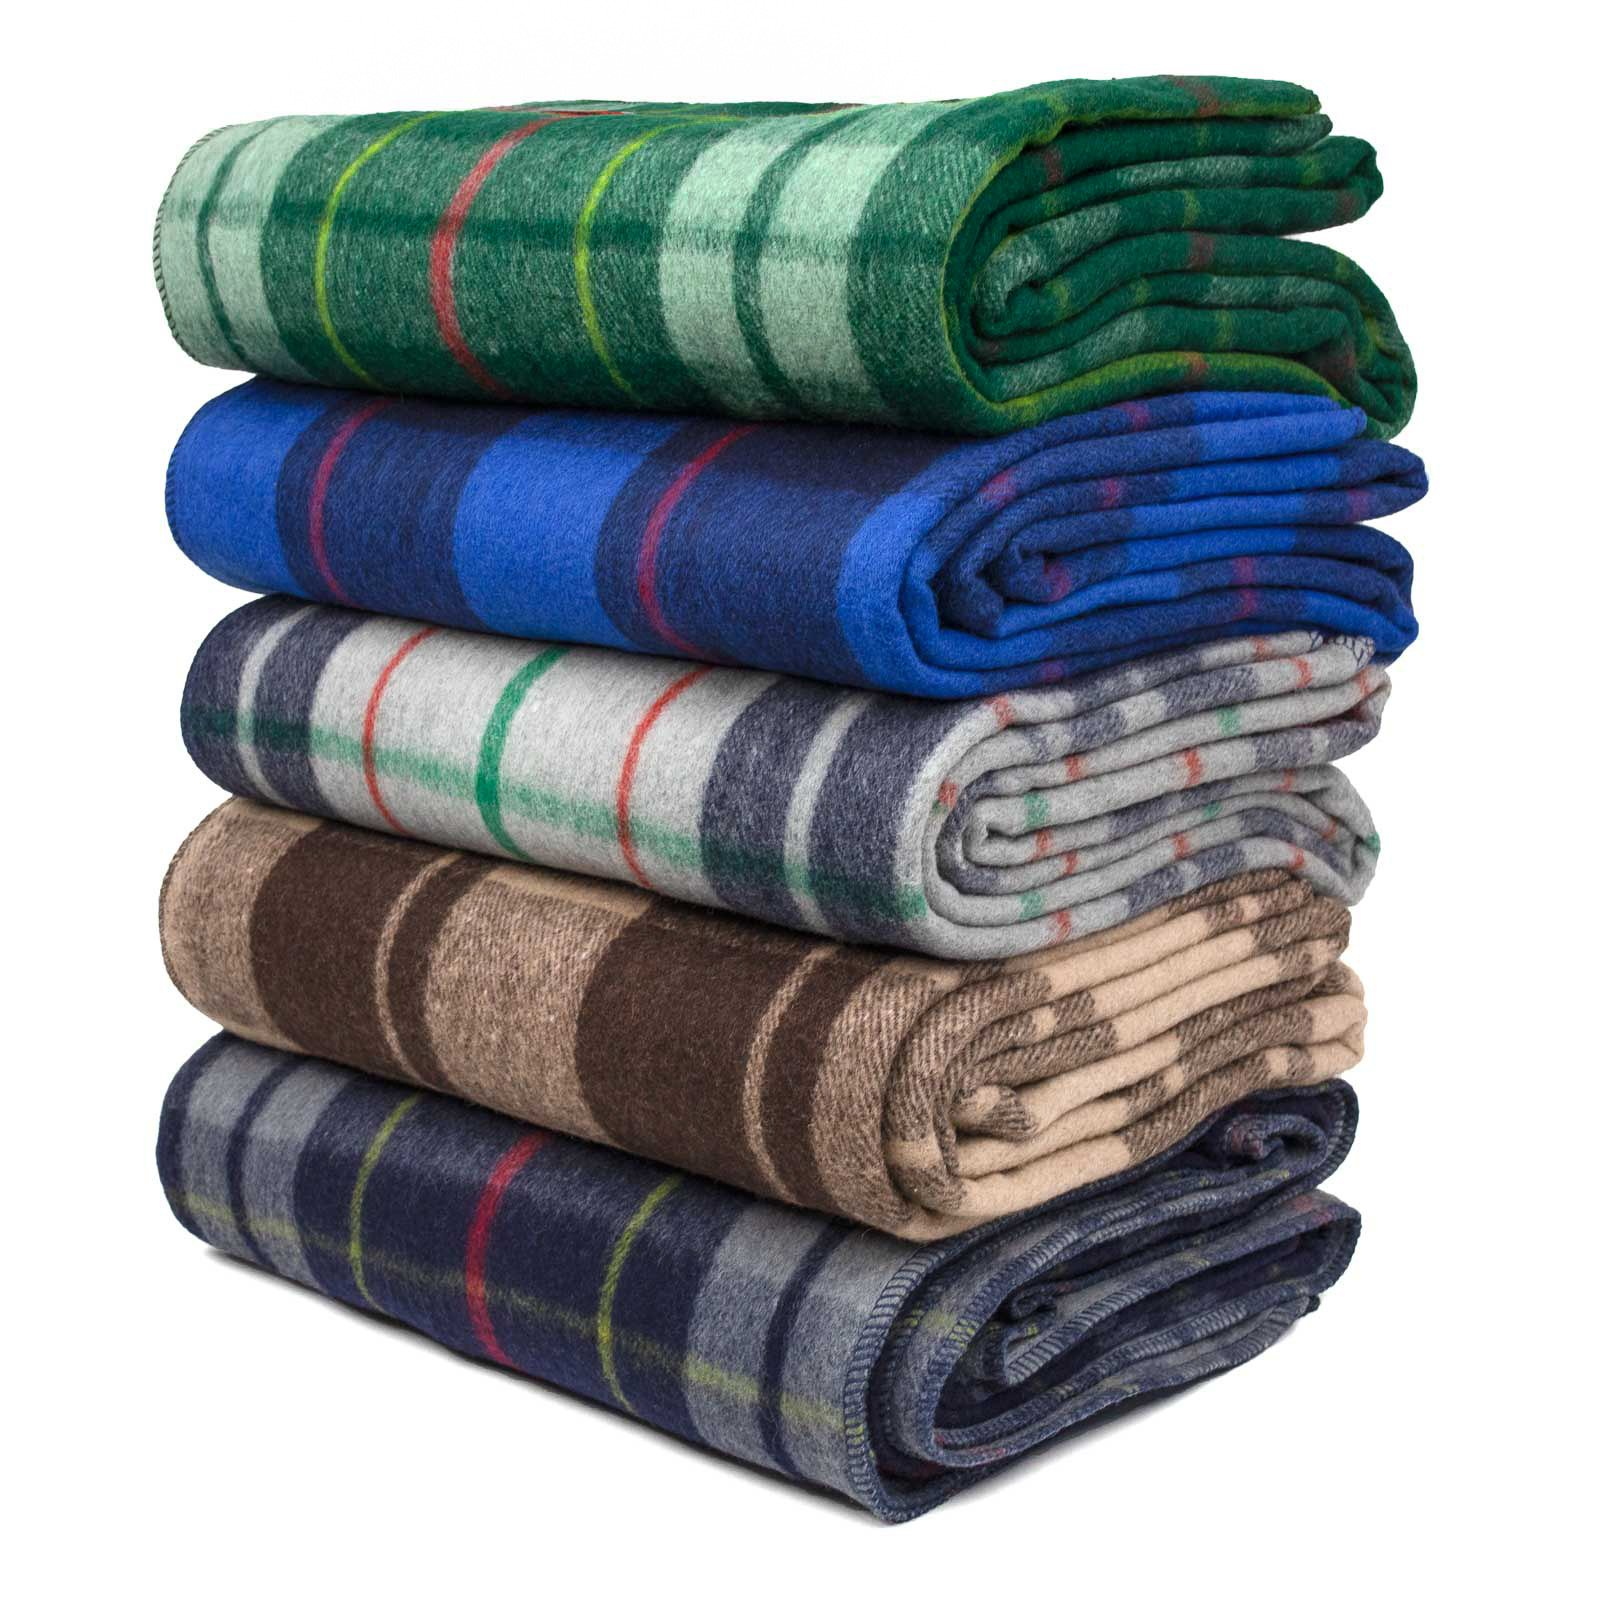 SwissLink Classic Plaid Wool Blanket Bundle